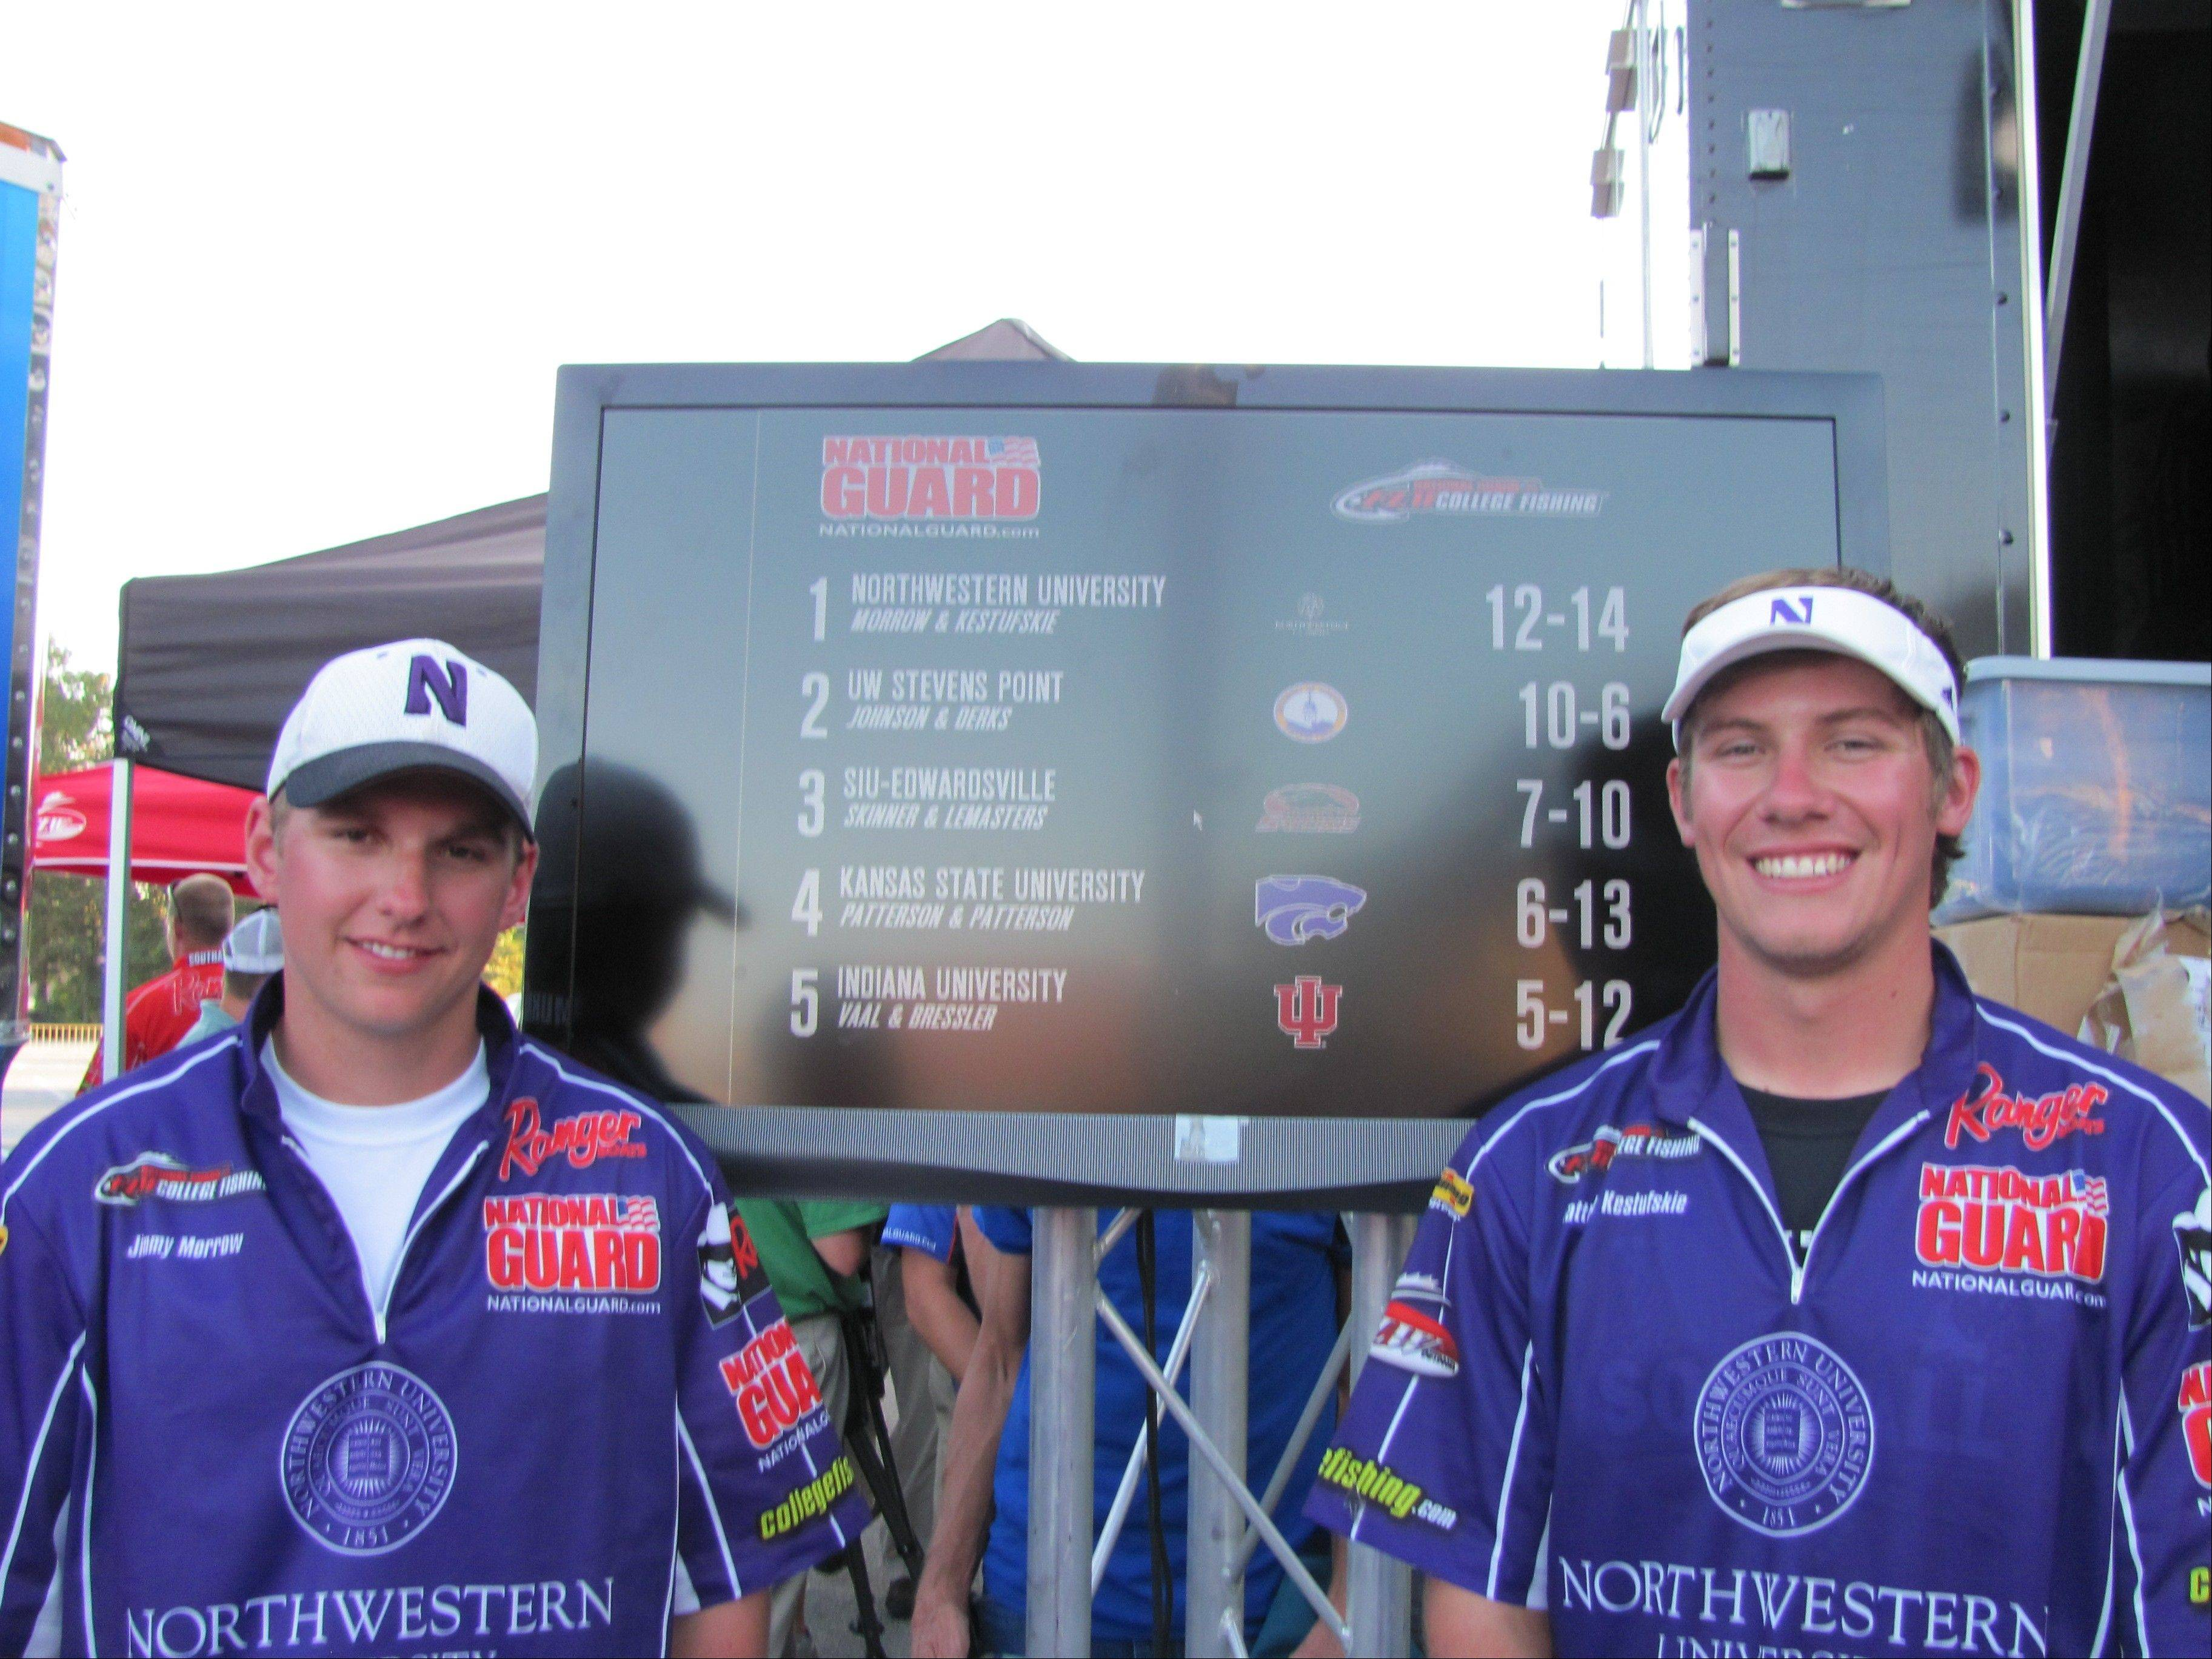 Jimmy Morrow of Arlington Heights and his Northwestern University teammate, Matthew Kestufskie, celebrate their regional win. The pair next month will compete in the National Guard FLW College Fishing National Championships.